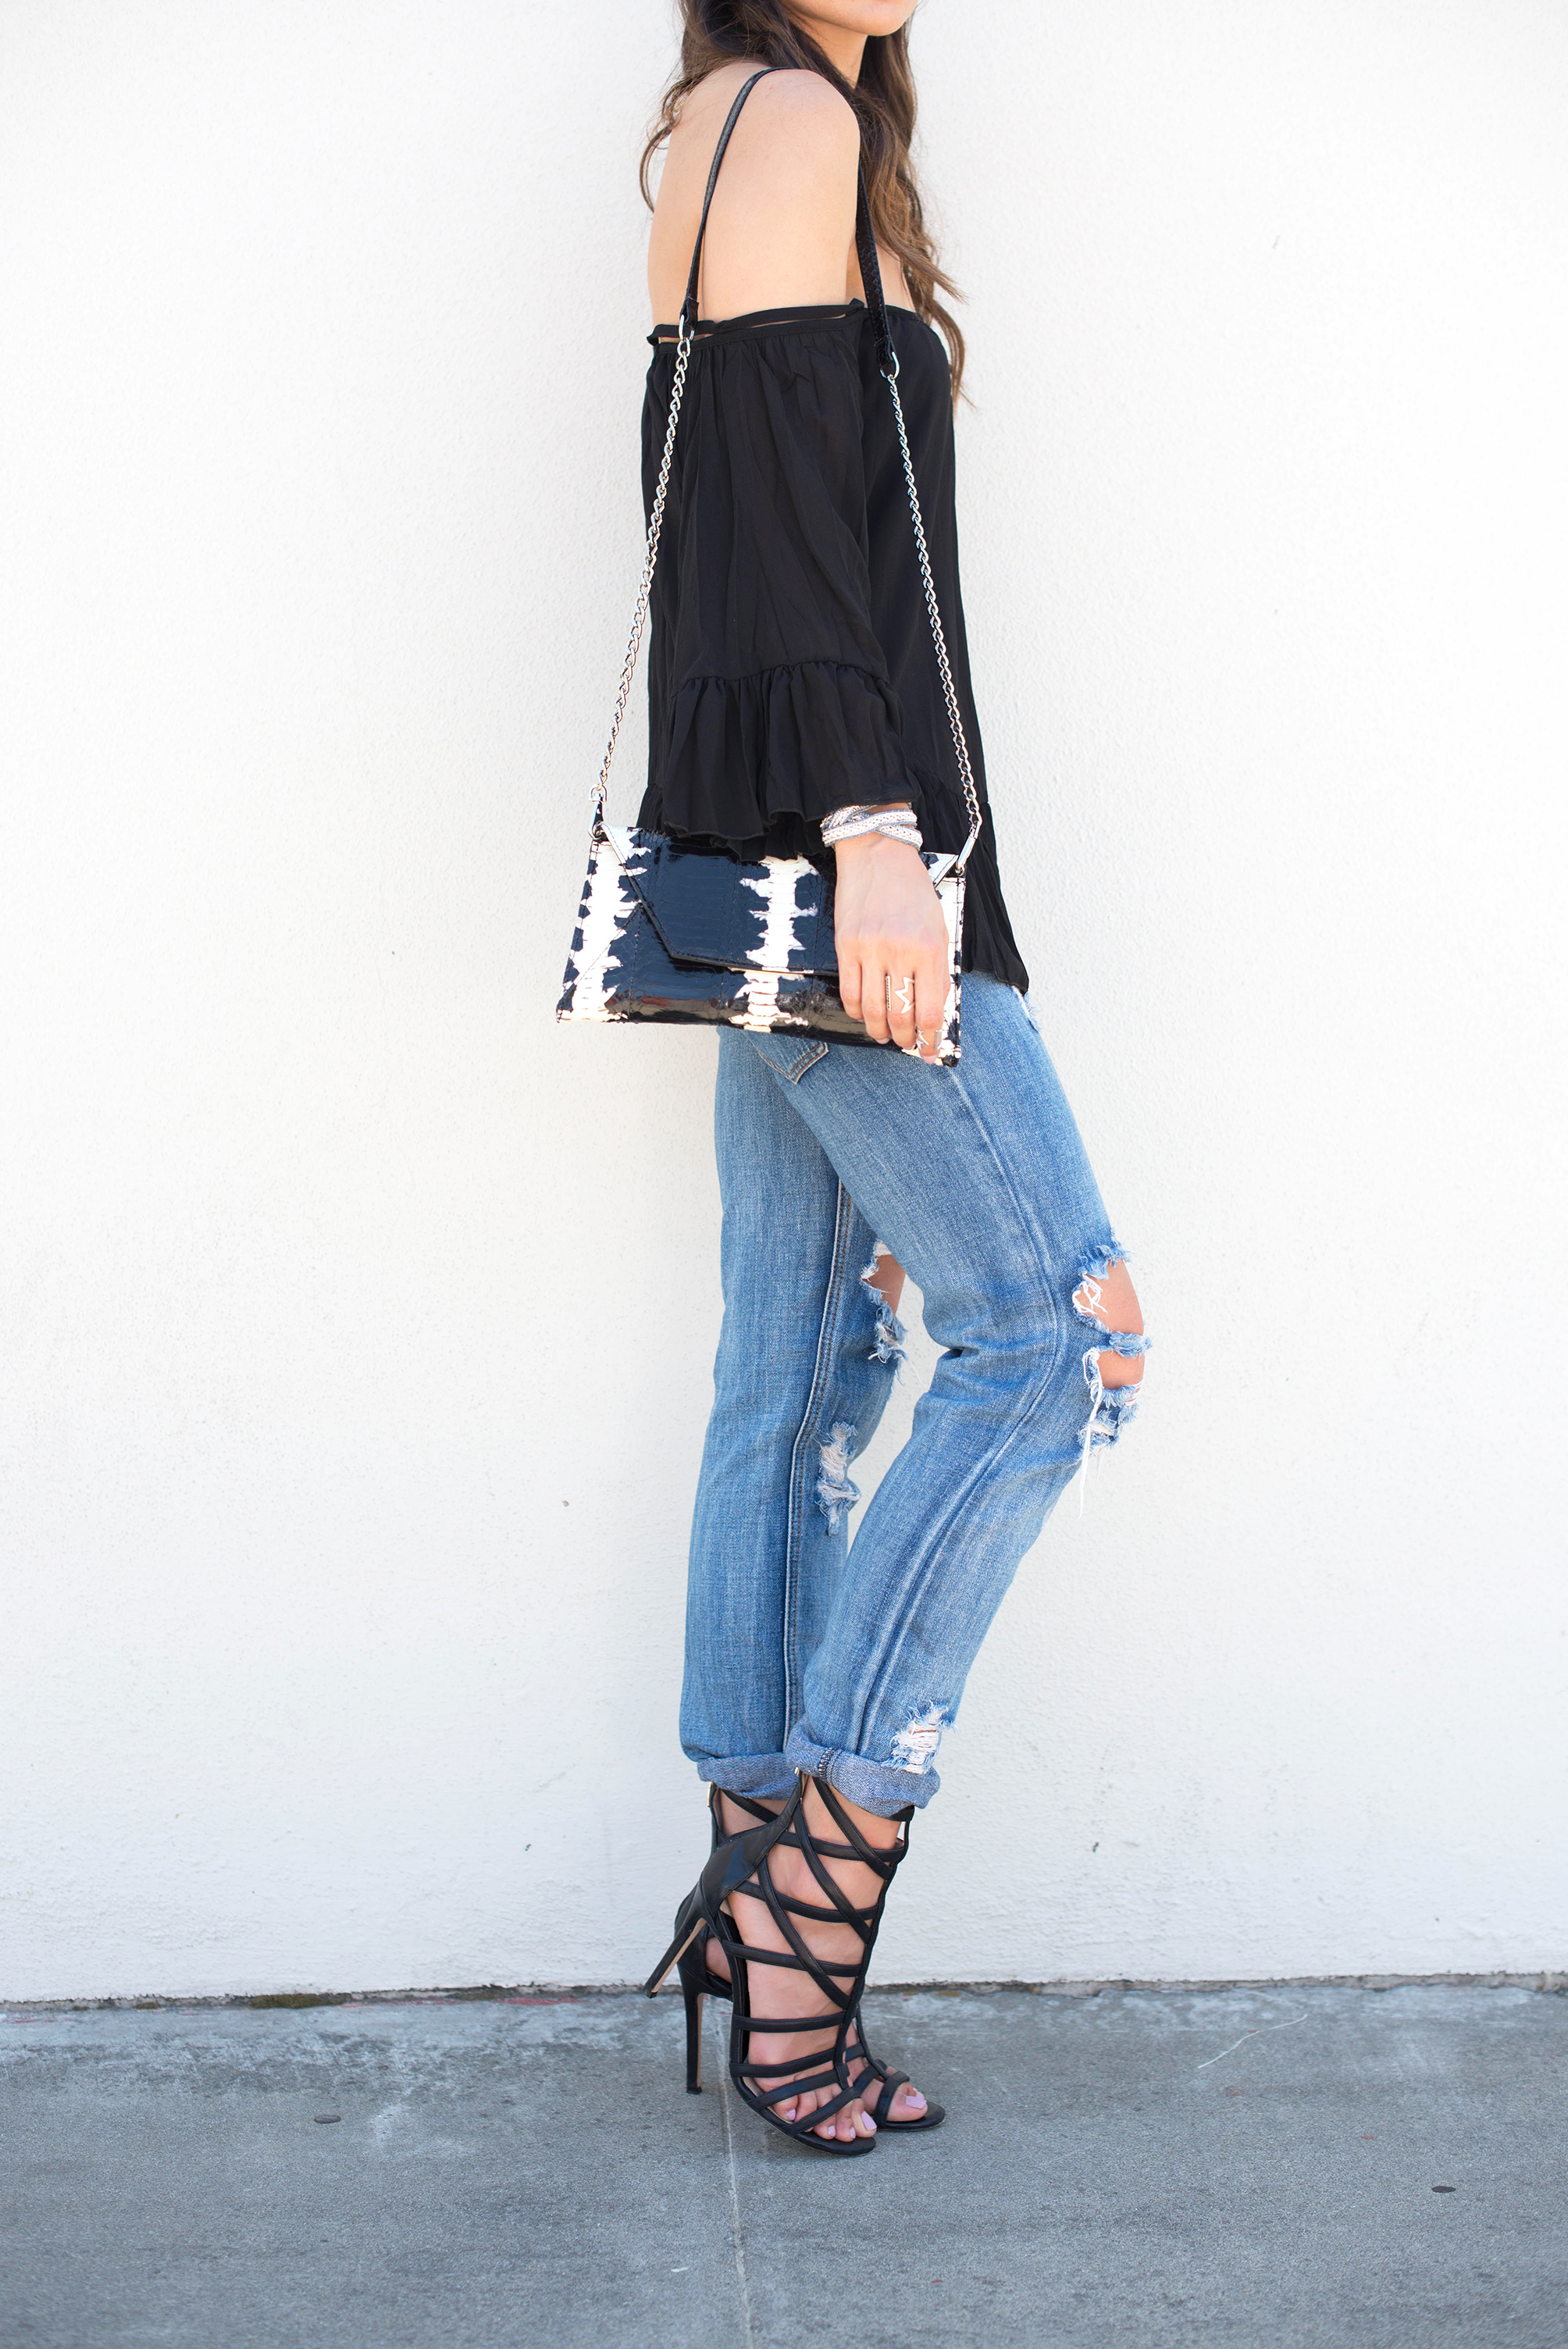 Off the shoulder Bardot Top, snakeskin clutch, and One Teaspoon Awesome Baggies jeans